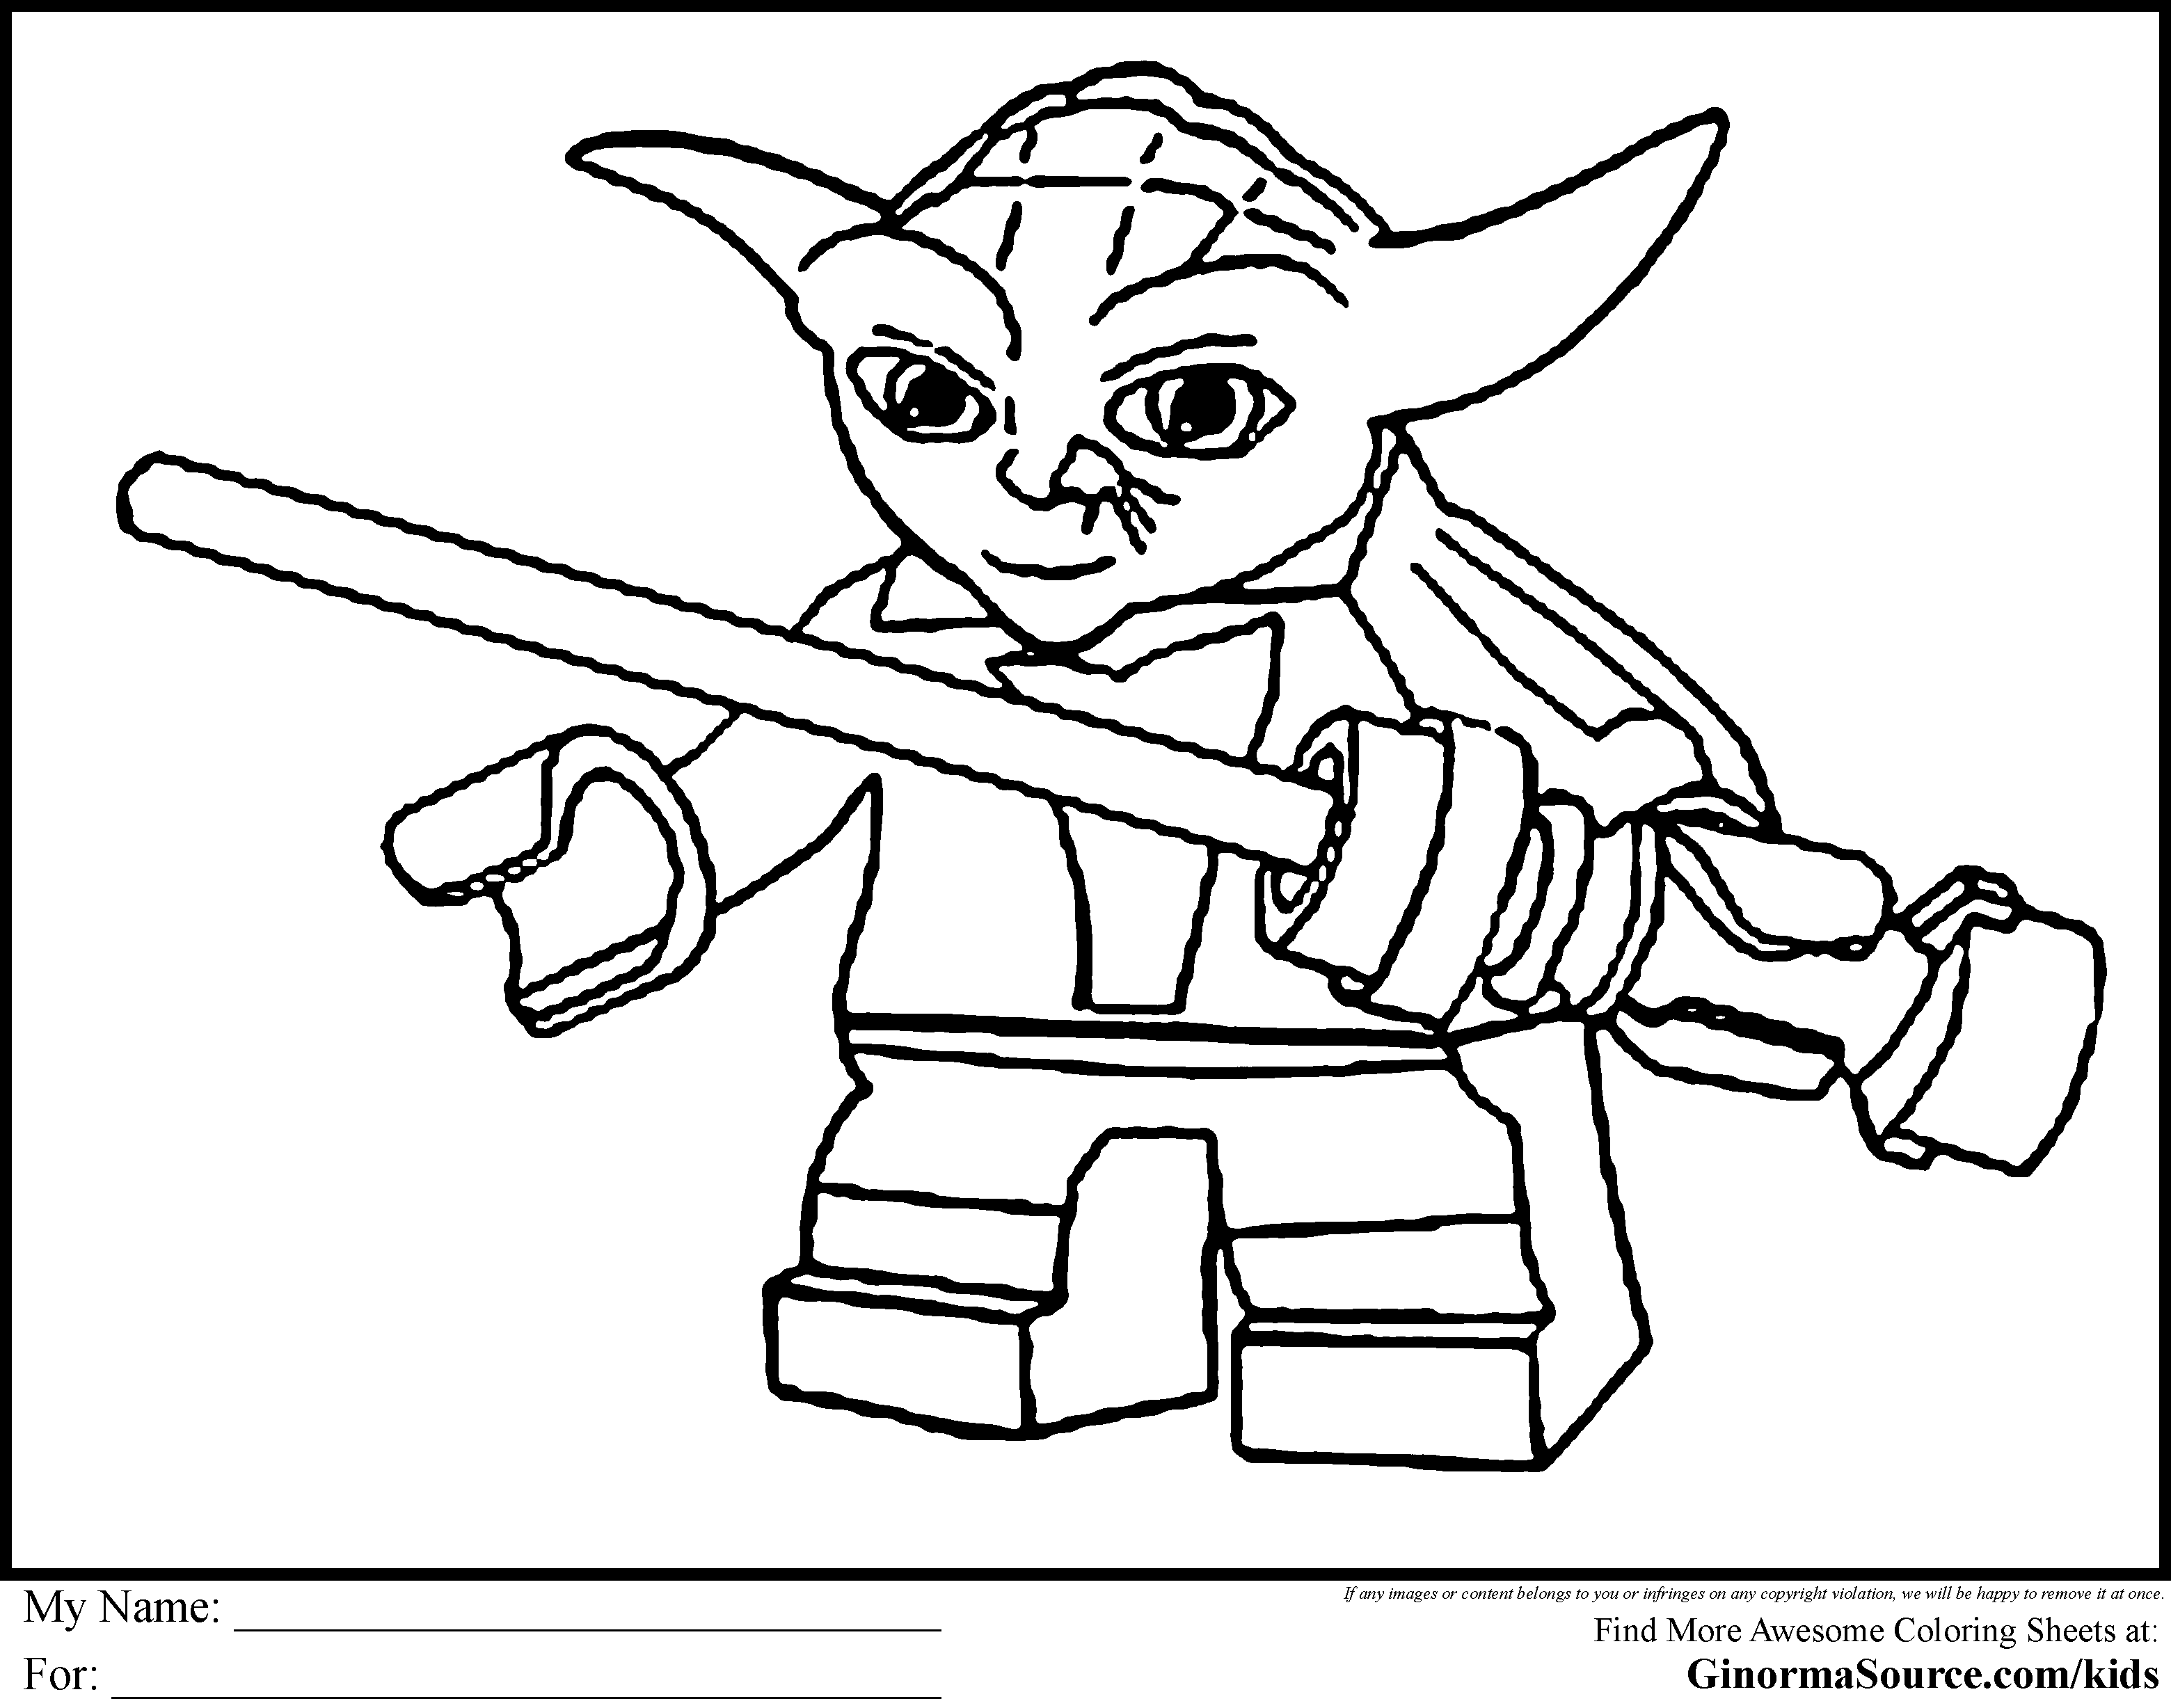 Star Trek Coloring Pages Lego Star Wars Coloring Pages Wars Free Coloring Pages